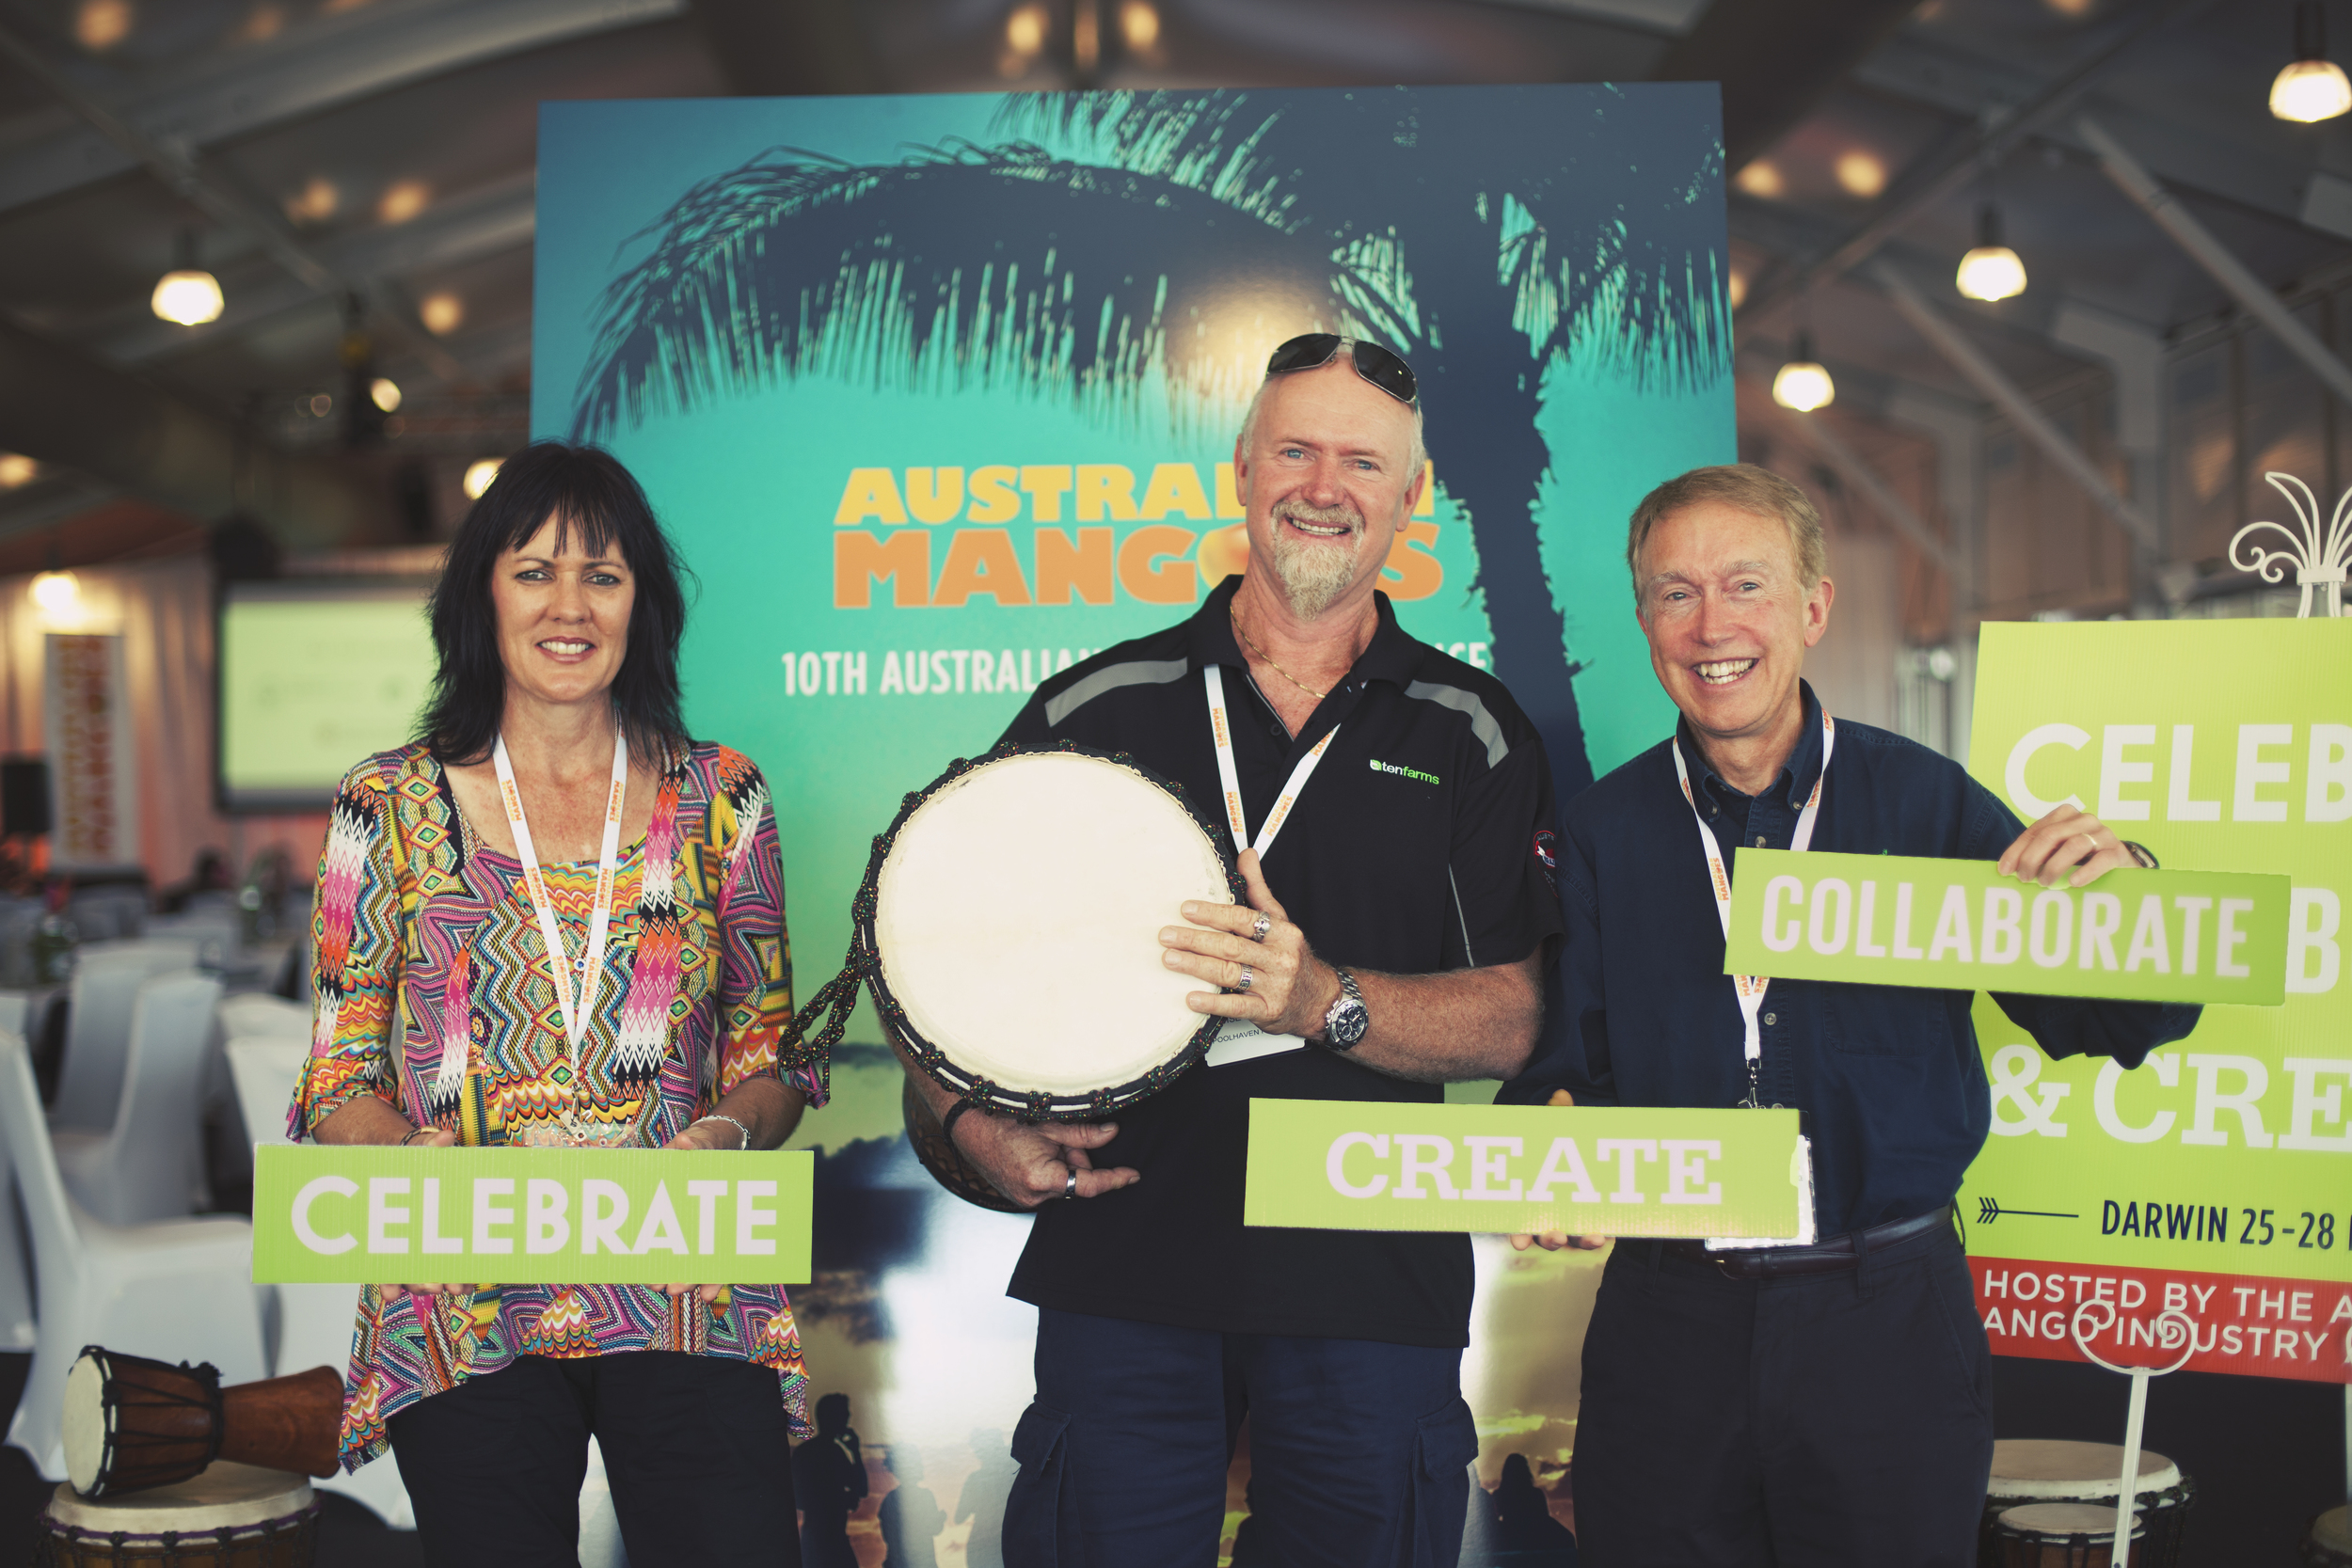 Alvise and Noalene Brazzale with Bill Gerlach from USmango importer Melissa's Produce at the 10th Autralian Mango Conference.